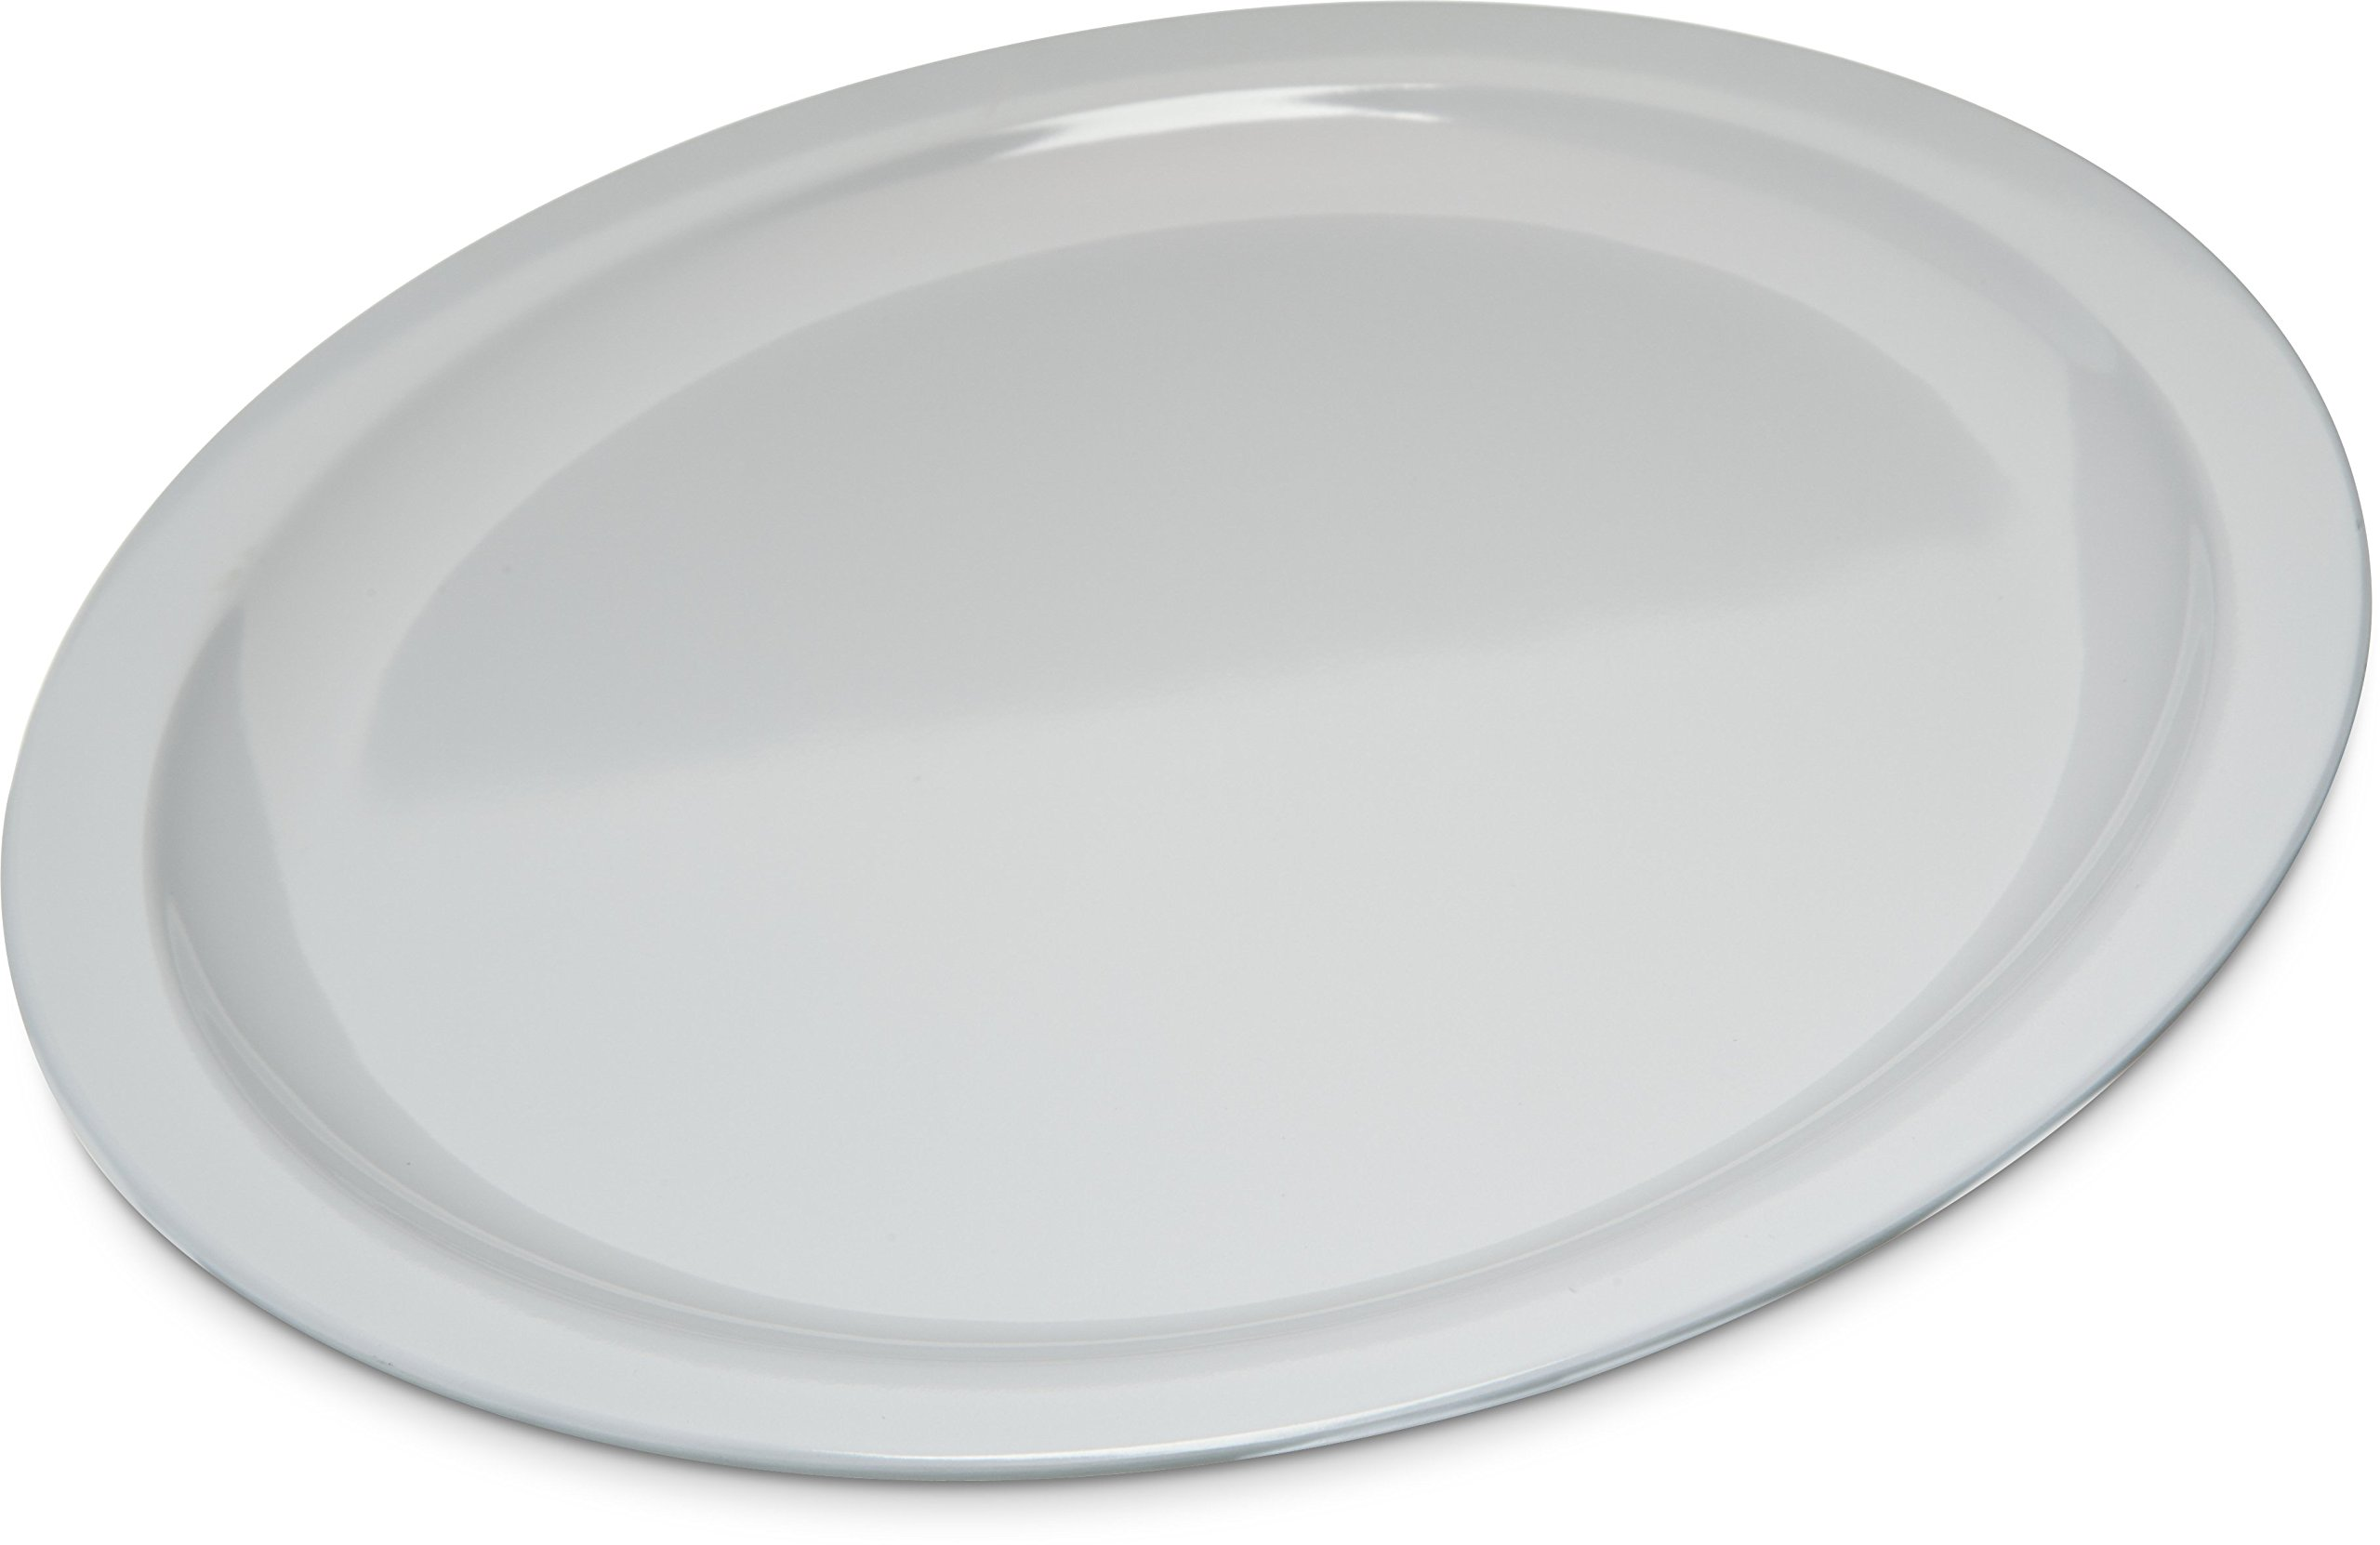 Carlisle KL11602 Kingline Melamine Dinner Plate, 10'' Diameter x 0.76'' Height, White (Case of 48)